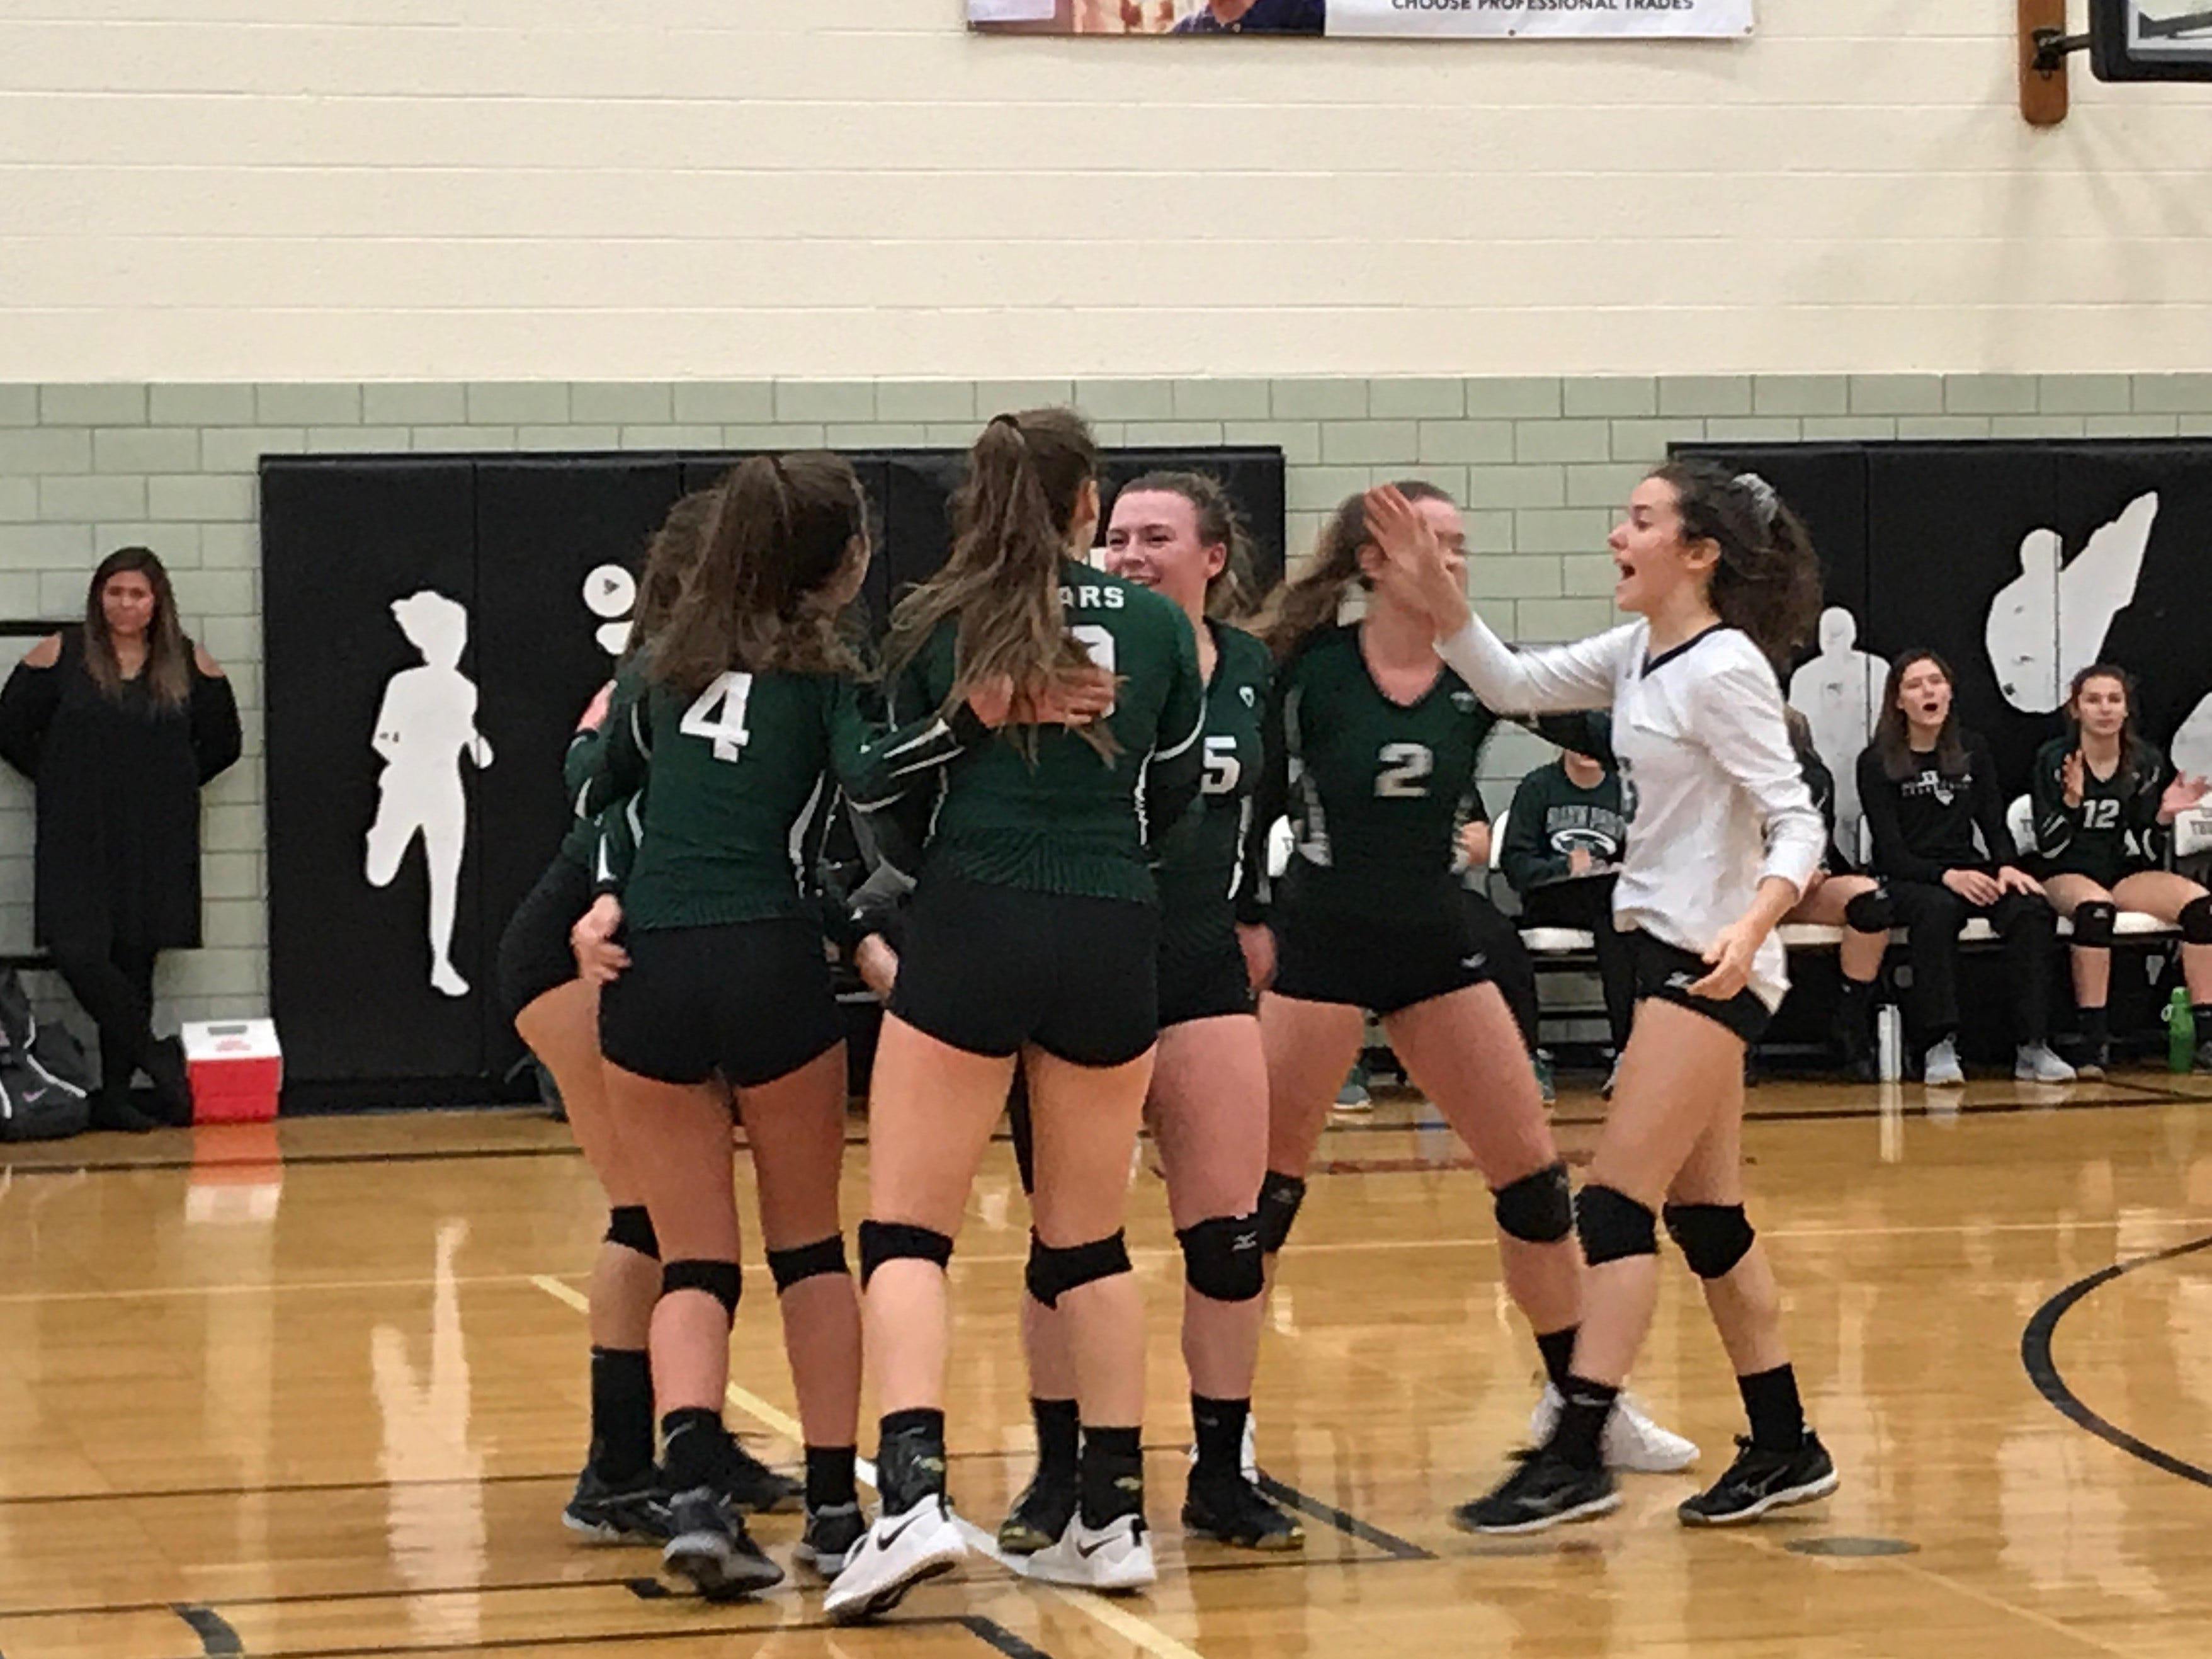 Allen Park volleyball players congratulate each other after scoring a point. Despite not being able to win a set against Livonia Churchill, the Jaguars had stretches of very competitive play during the Division 1 regional semifinal.